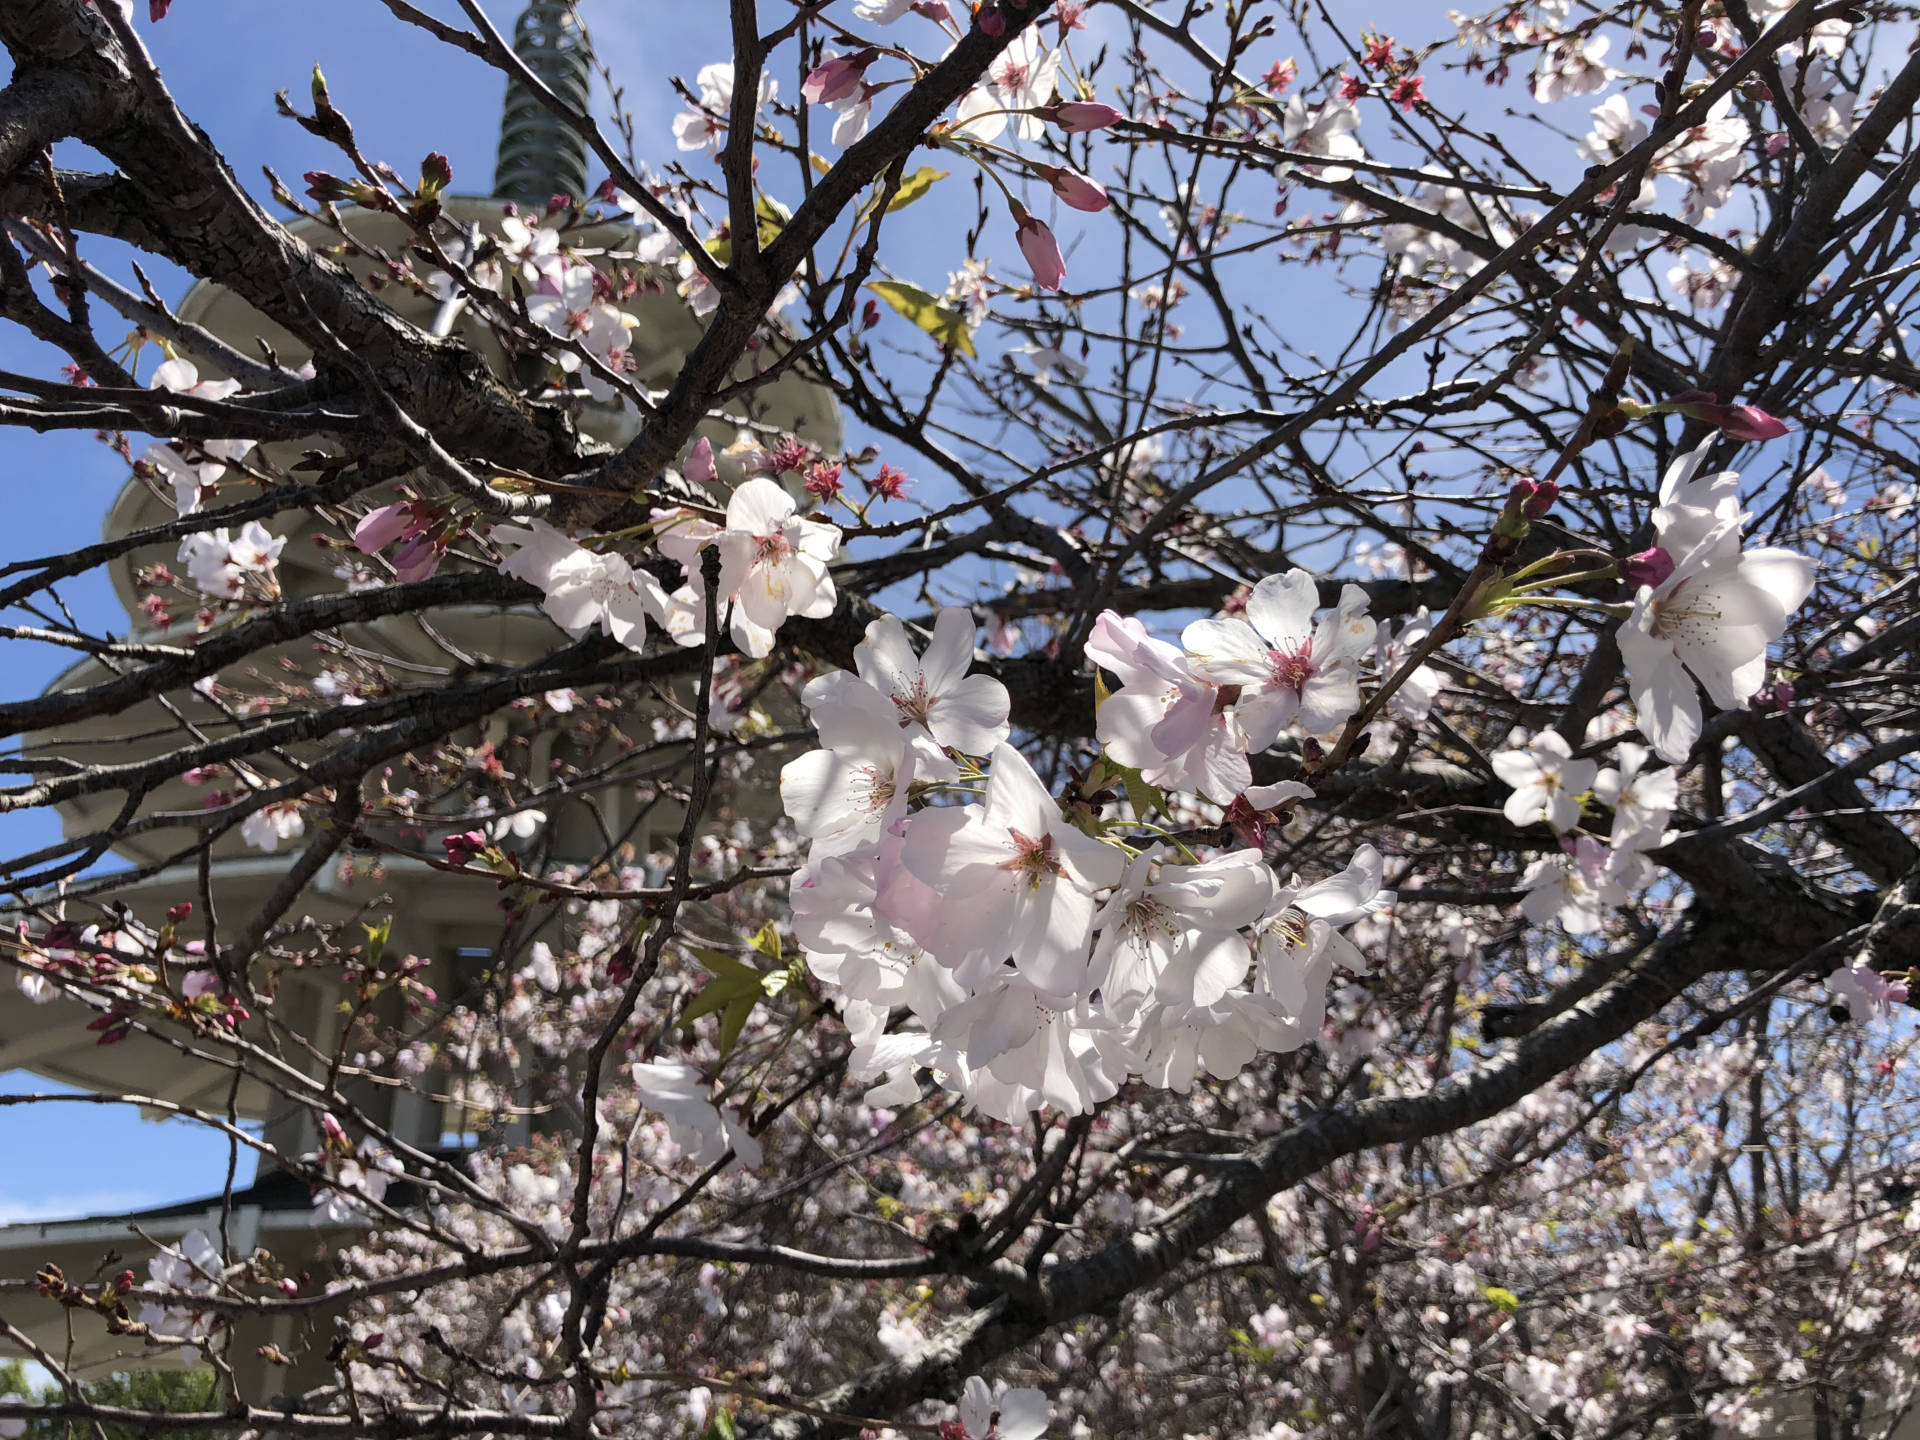 The Northern California Cherry Blossom Festival took place in San Francisco's Japantown.  Alyssa Jeong Perry/KQED